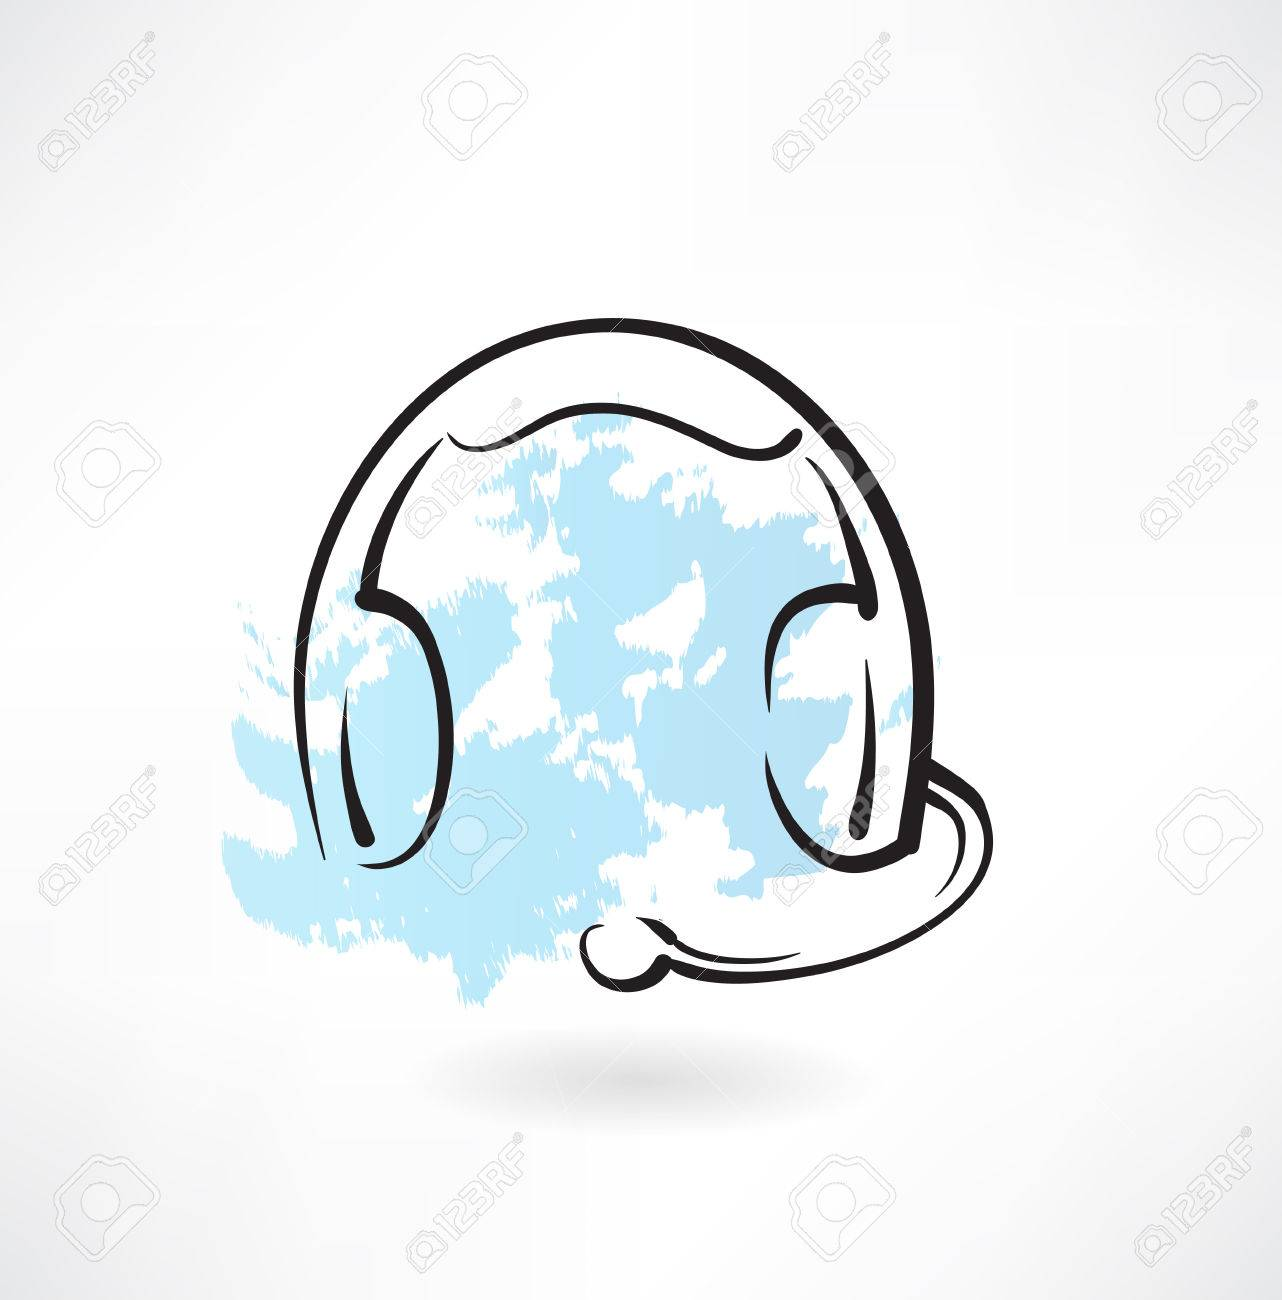 1282x1300 Headset With Microphone Grunge Icon Royalty Free Cliparts, Vectors